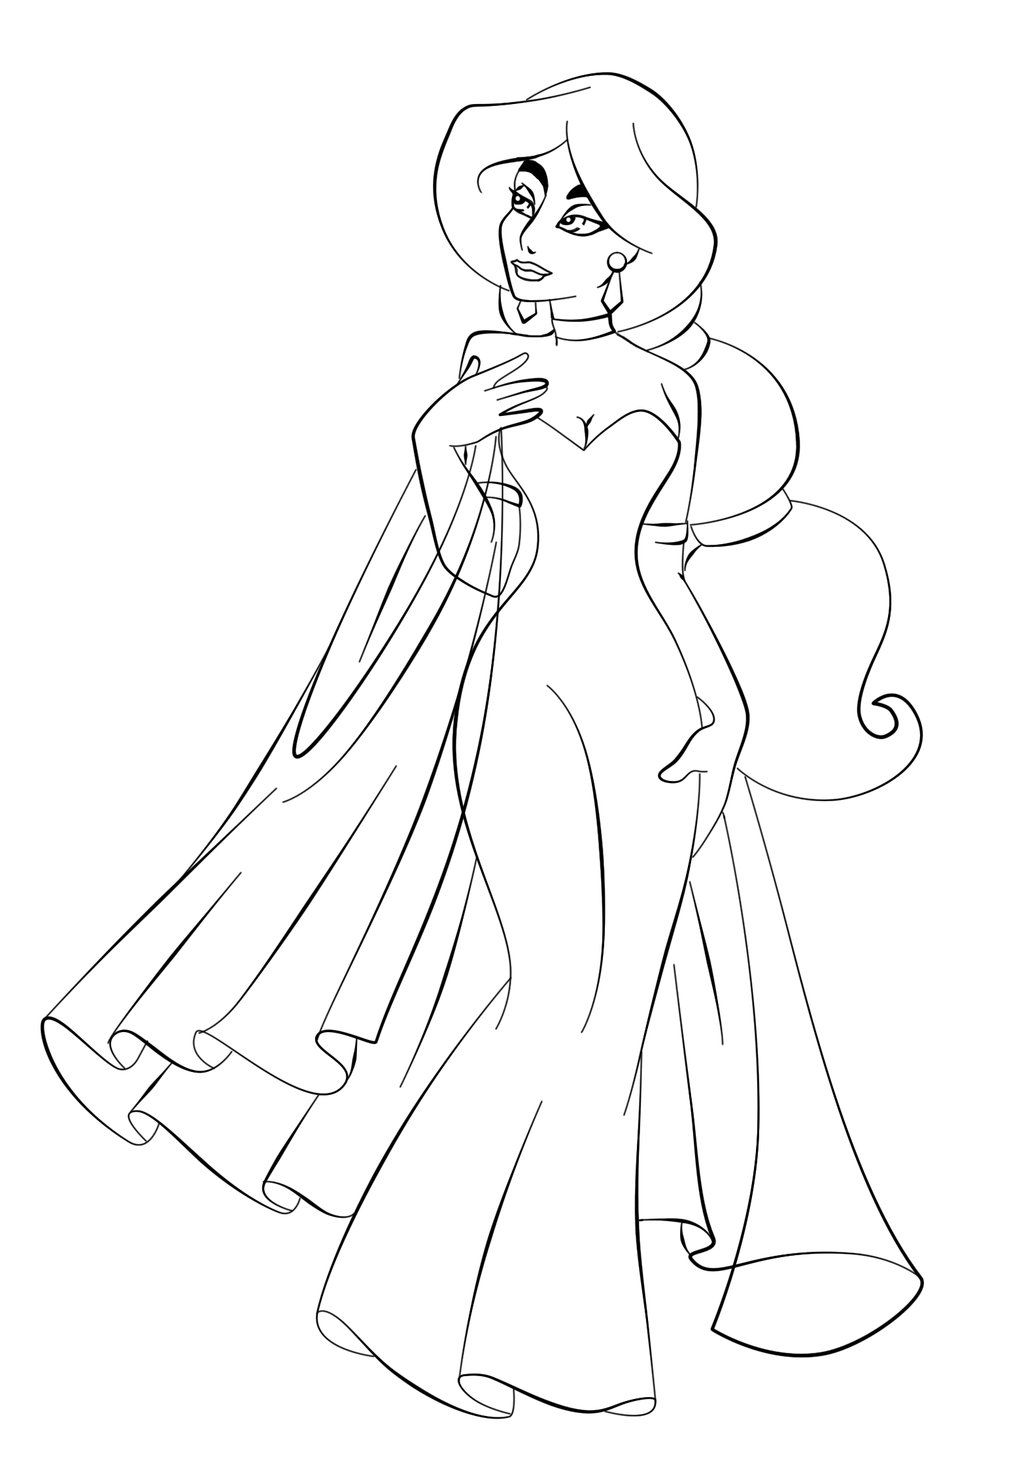 Full Page Princess Coloring Pages Coloring Home